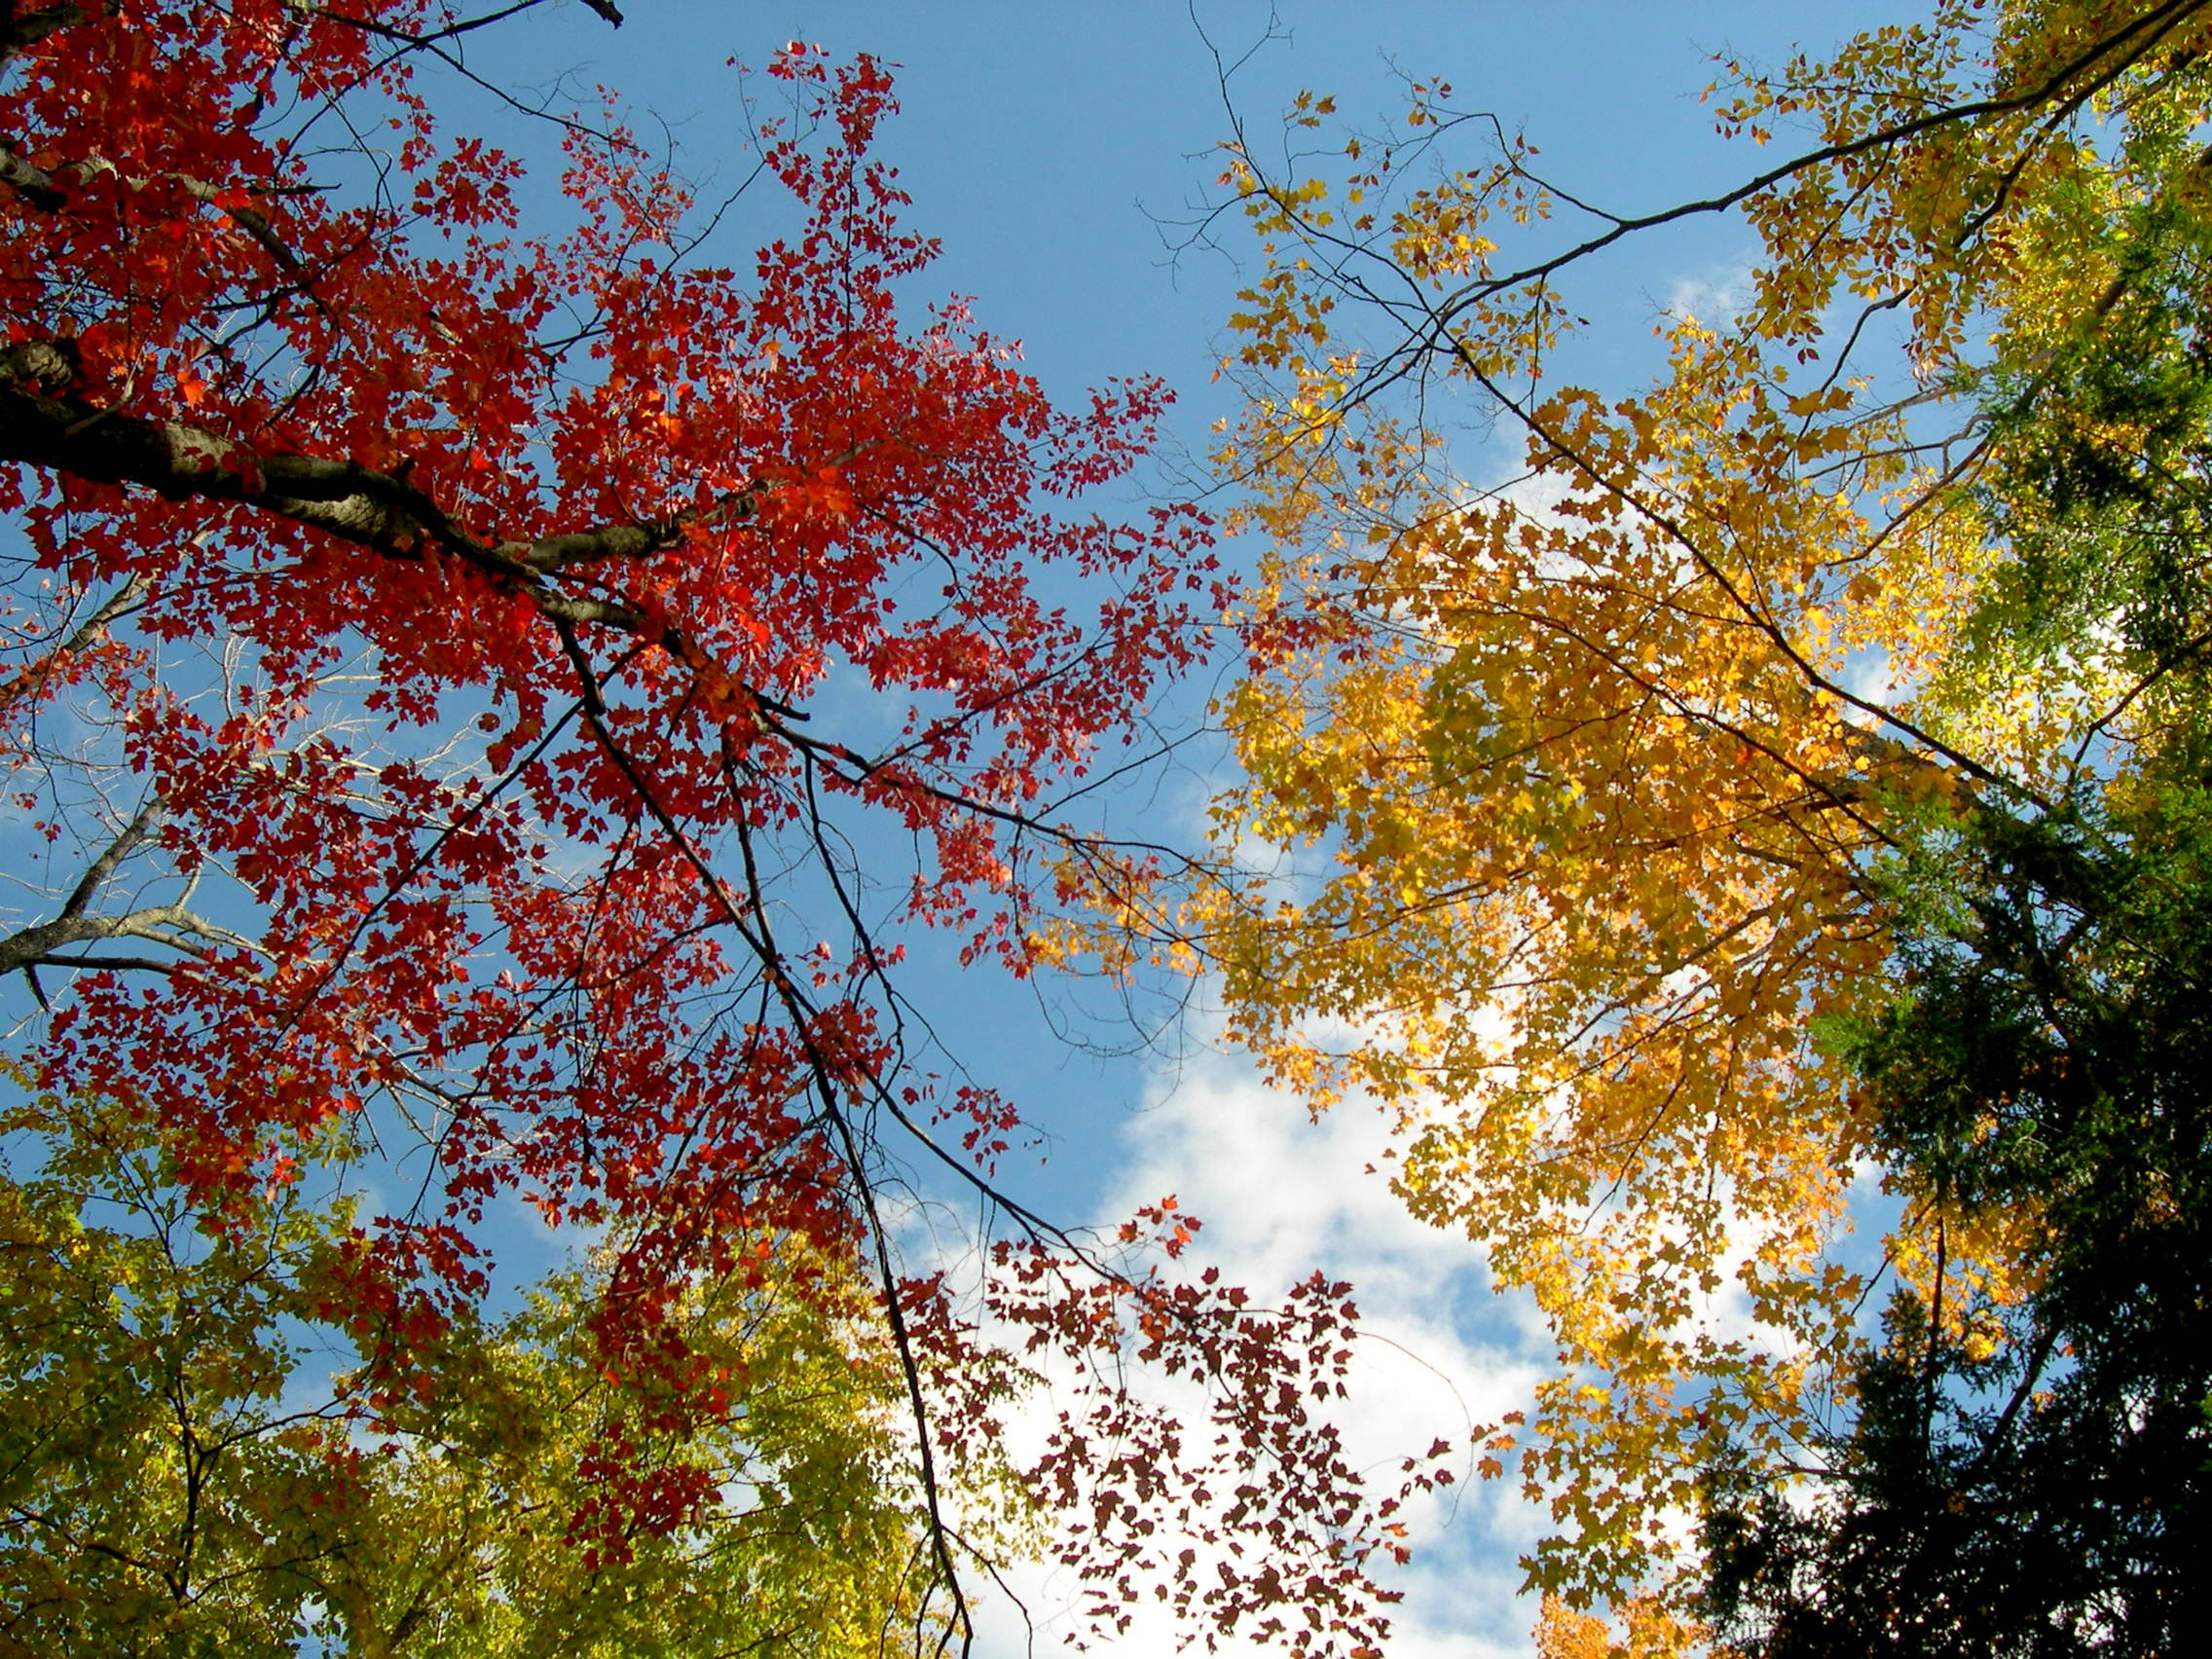 Fall leaves against a blue sky